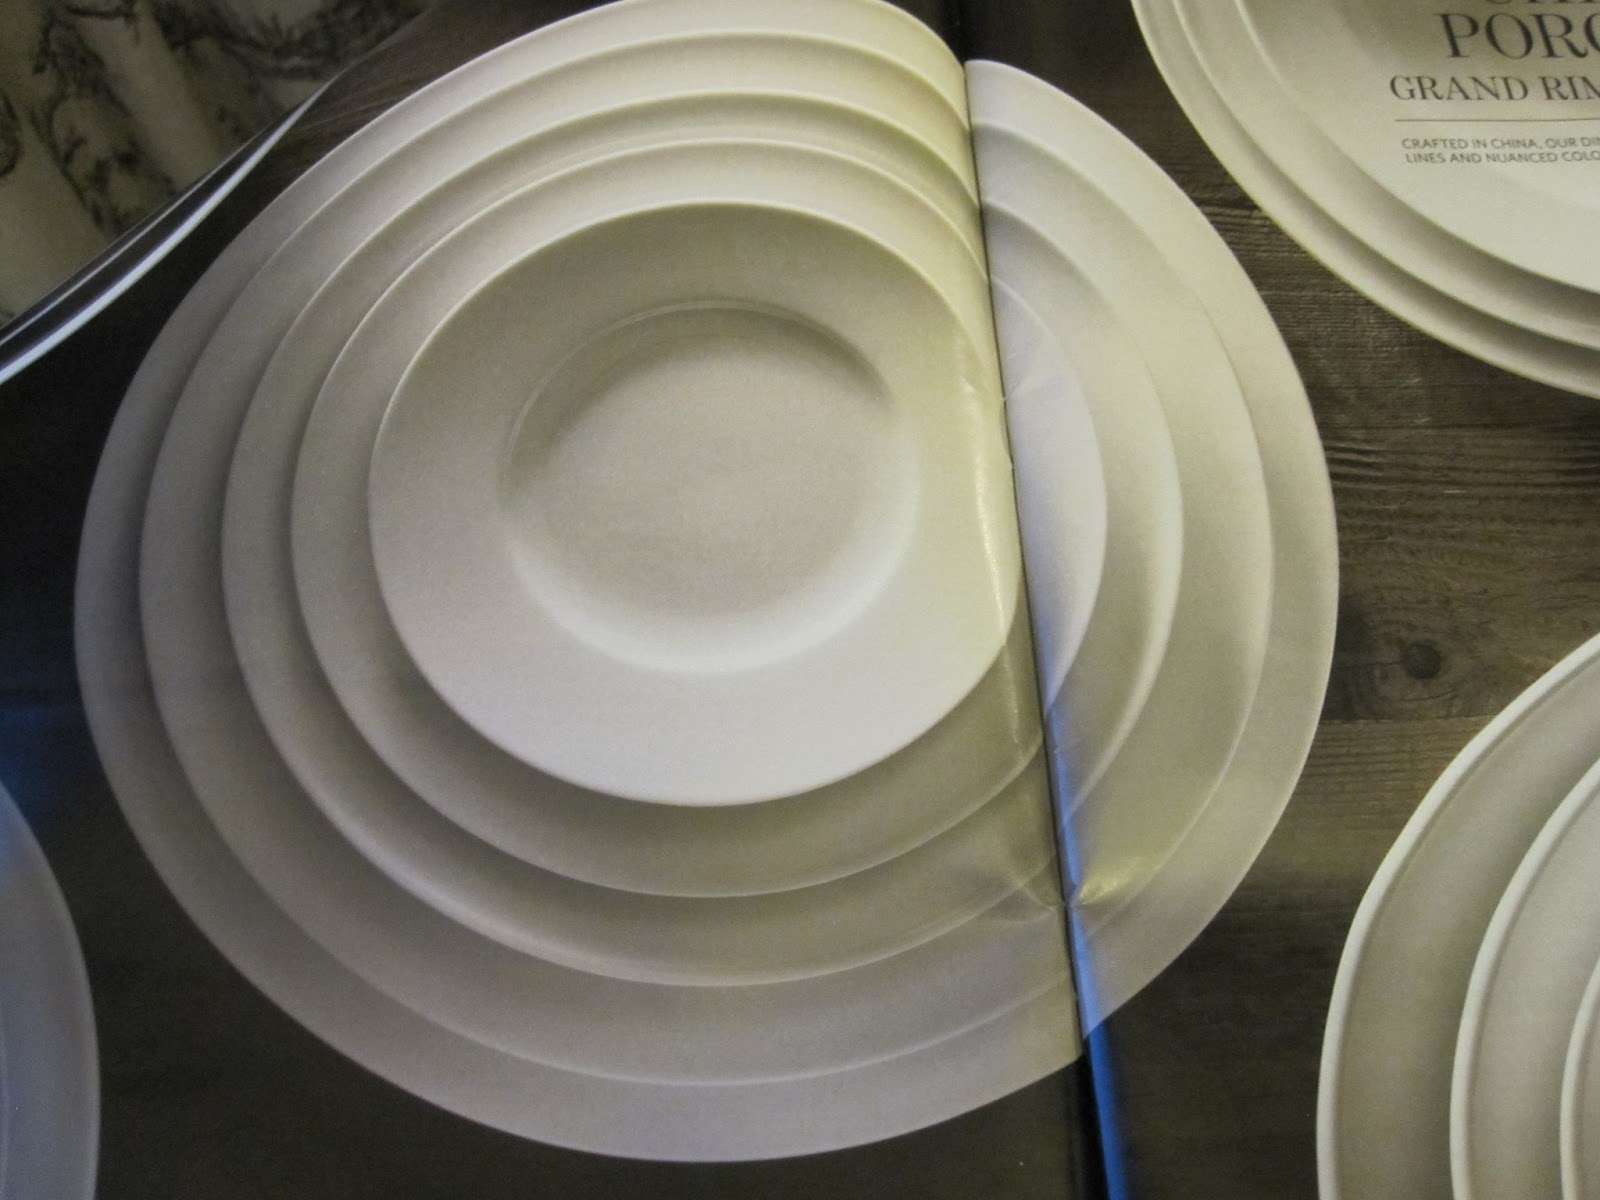 Groundbreaking round plates & Design du Monde: The co-founder of black is at it again